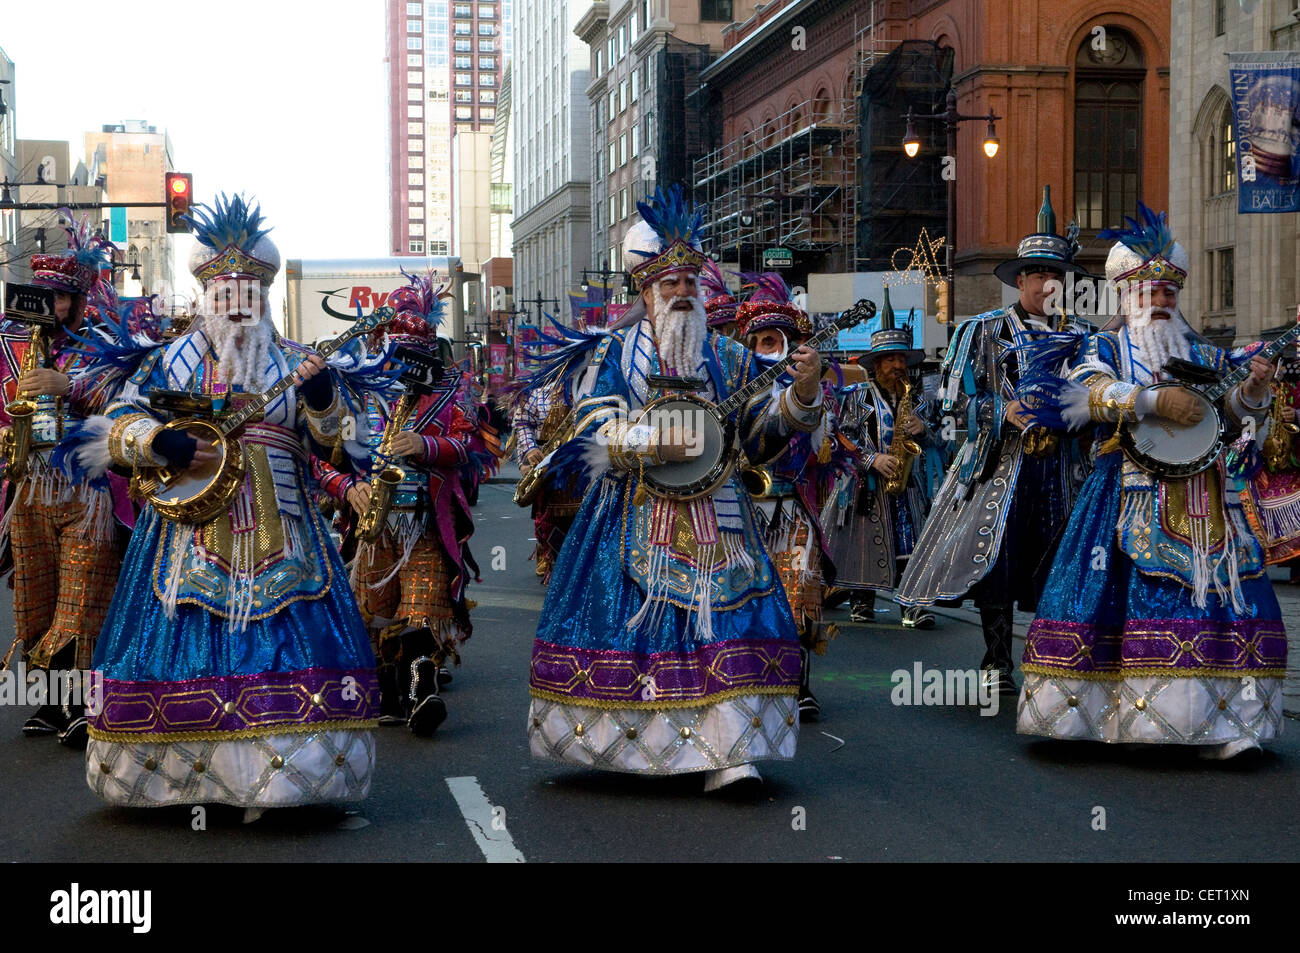 The colorful Mummers parade in Philadelphia. - Stock Image